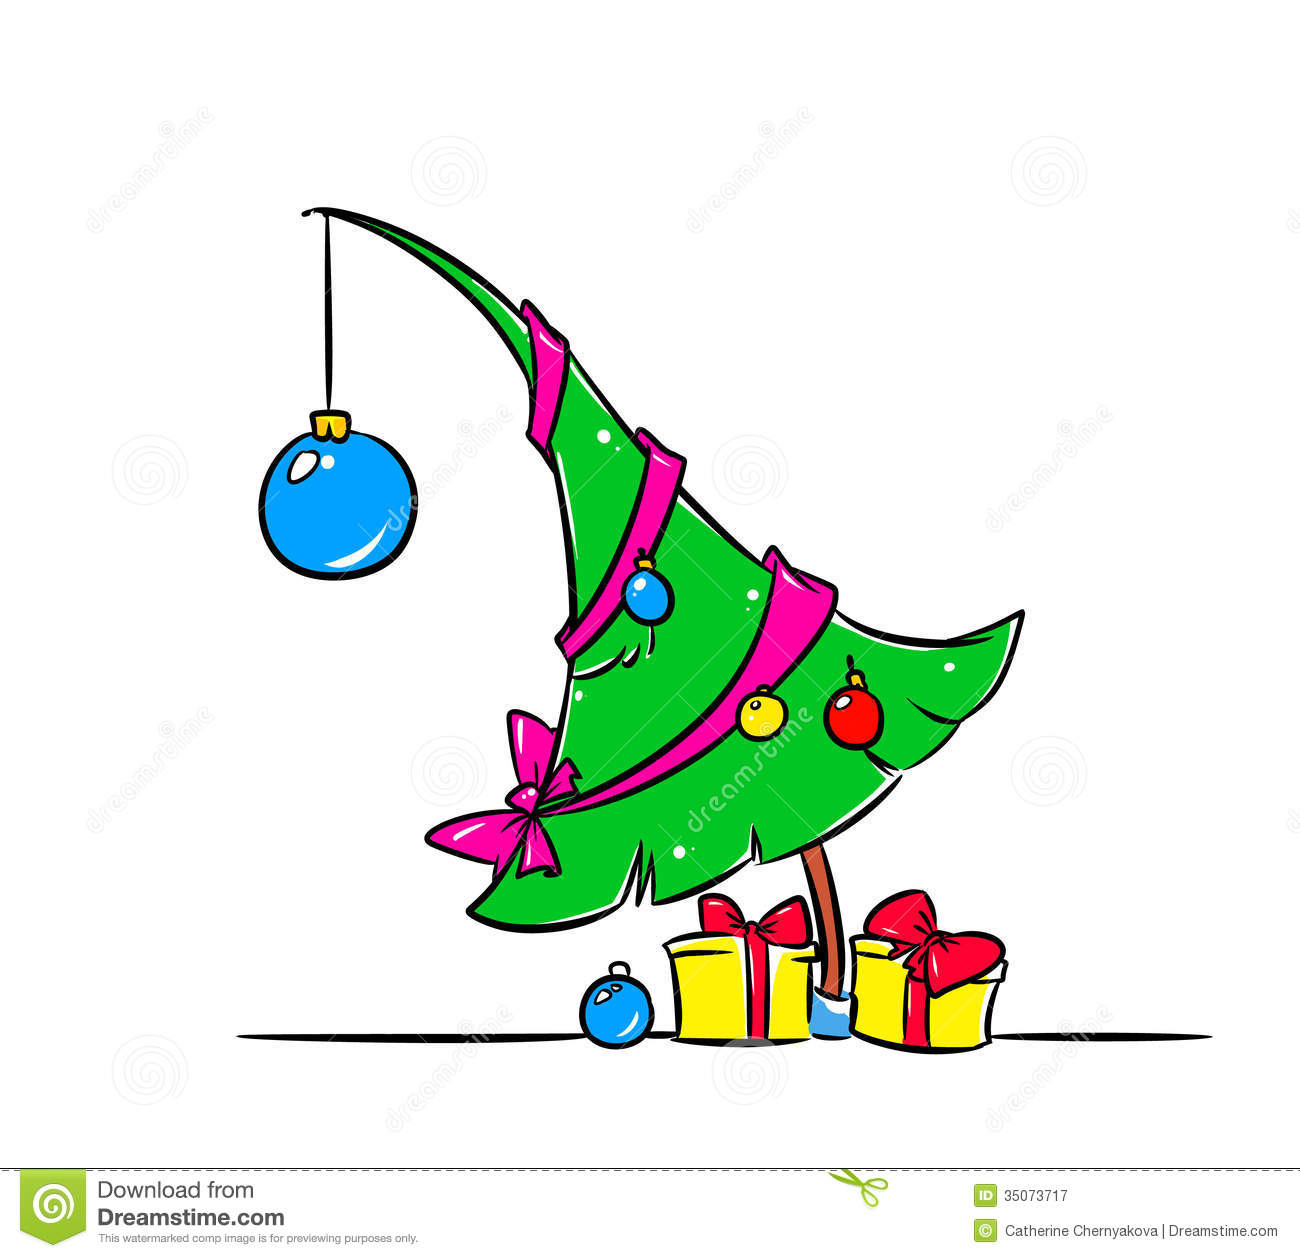 Christmas Toys Cartoon : Christmas tree gifts illustration stock